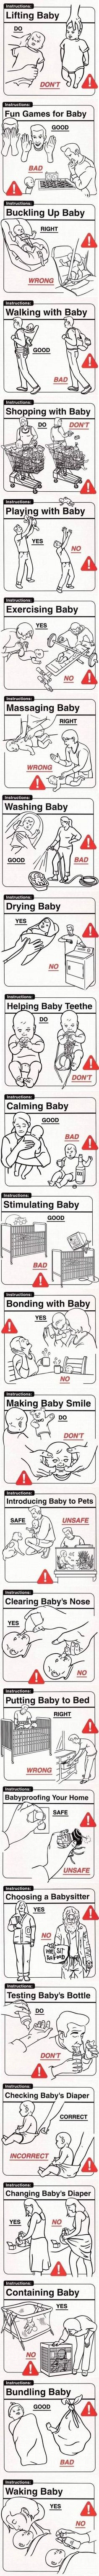 Funny Baby Do's and Don'ts - I'm pretty sure I got a couple of these wrong.